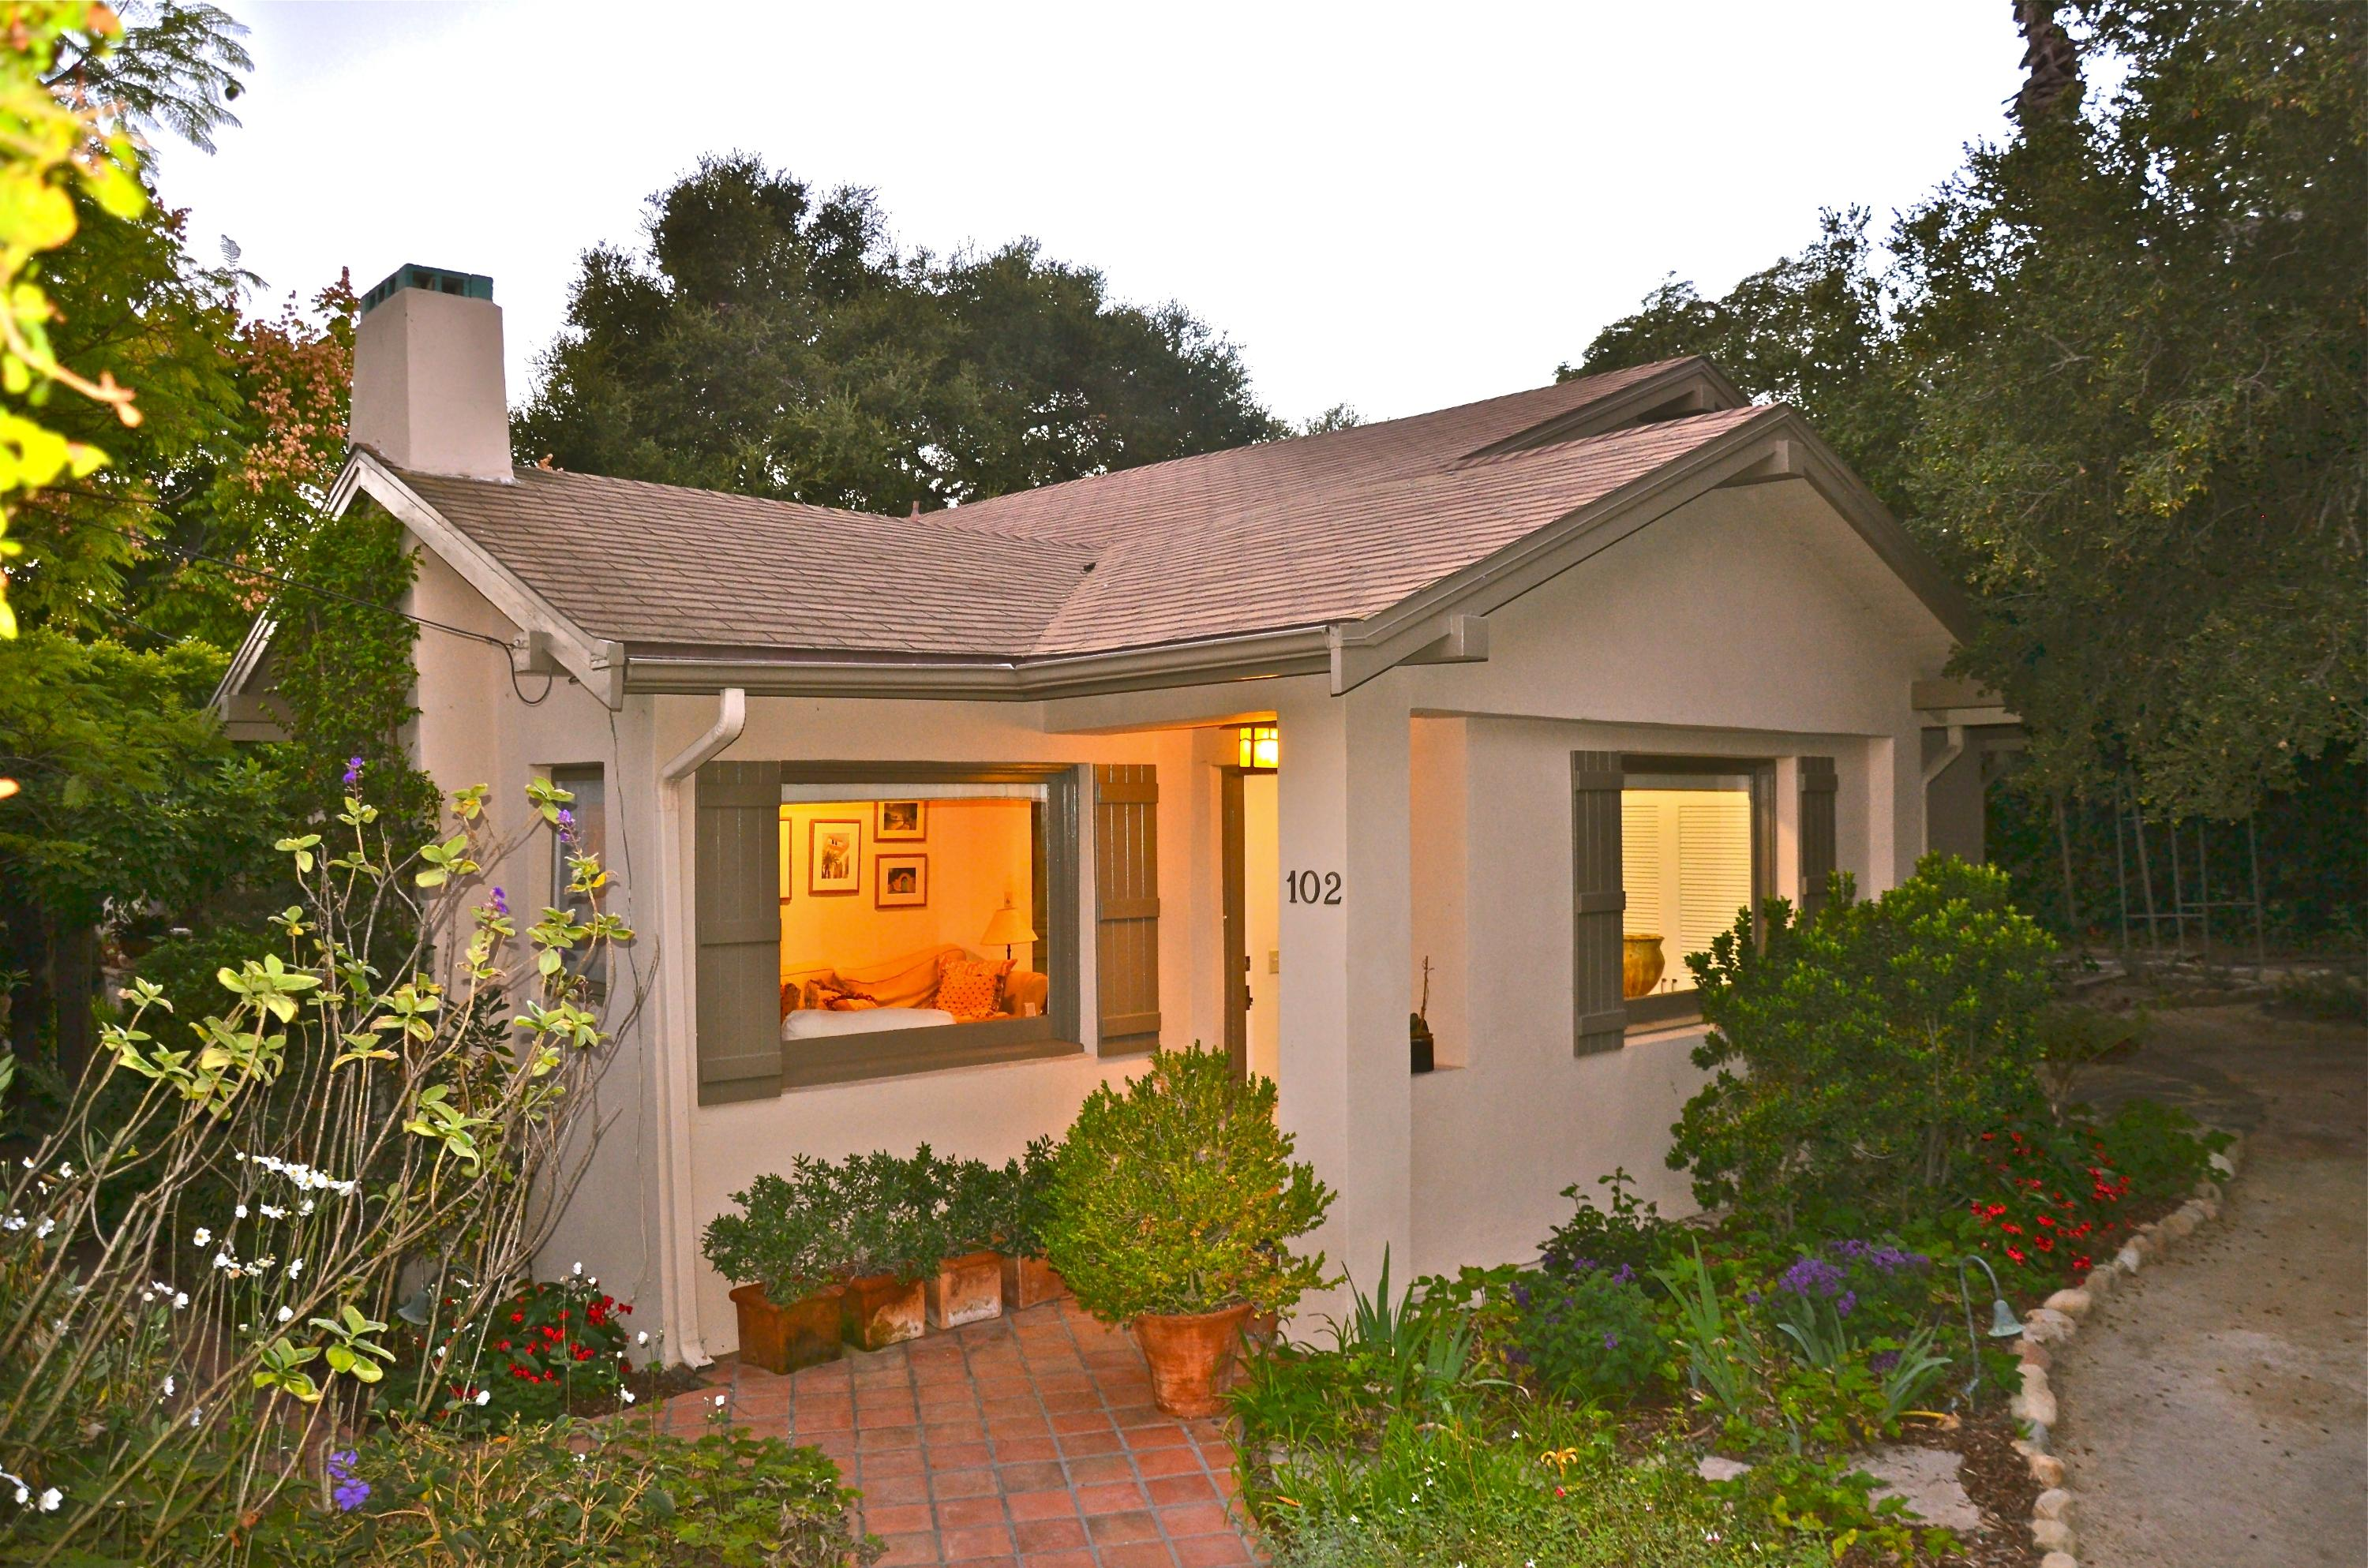 Property photo for 102 W Quinto St Santa Barbara, California 93105 - 13-2990